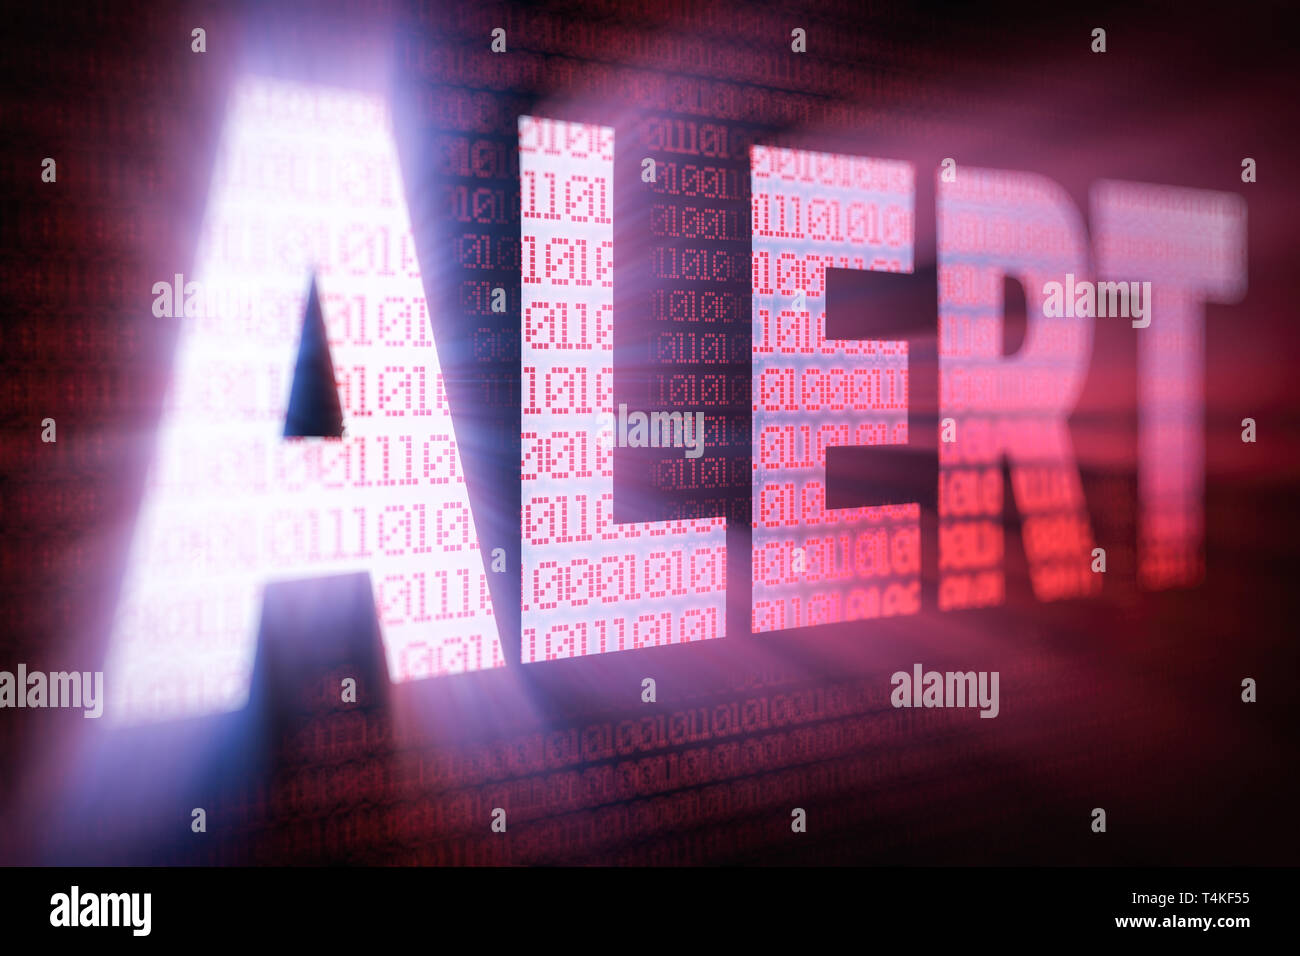 ALERT bright glowing word on computer screen filled with binary code - Stock Image